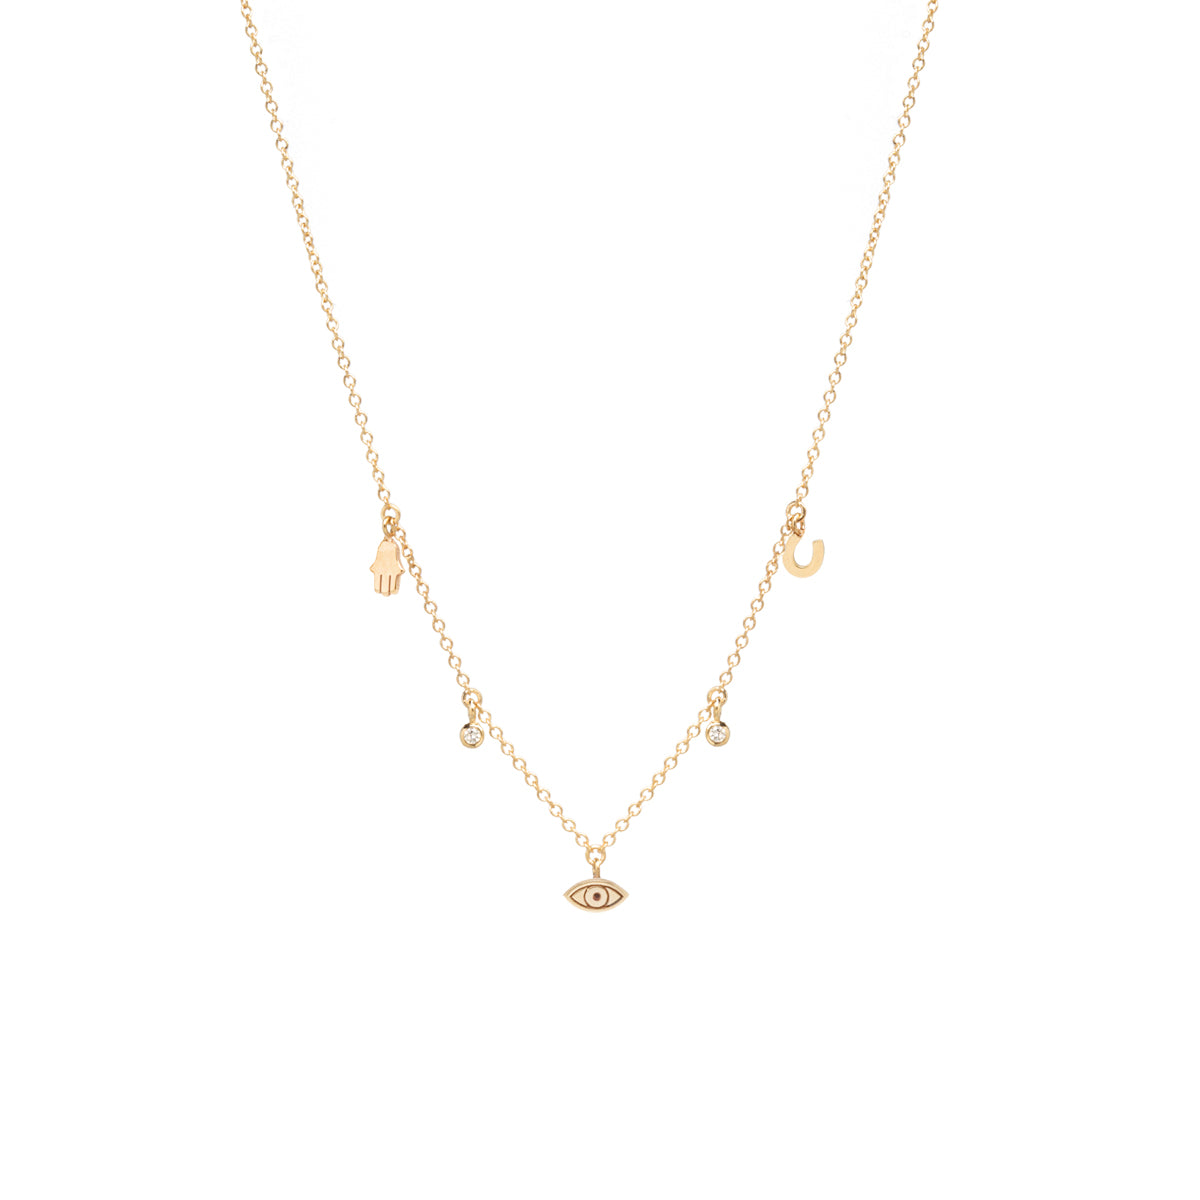 14k itty bitty Luck and Protection dangling diamond necklace